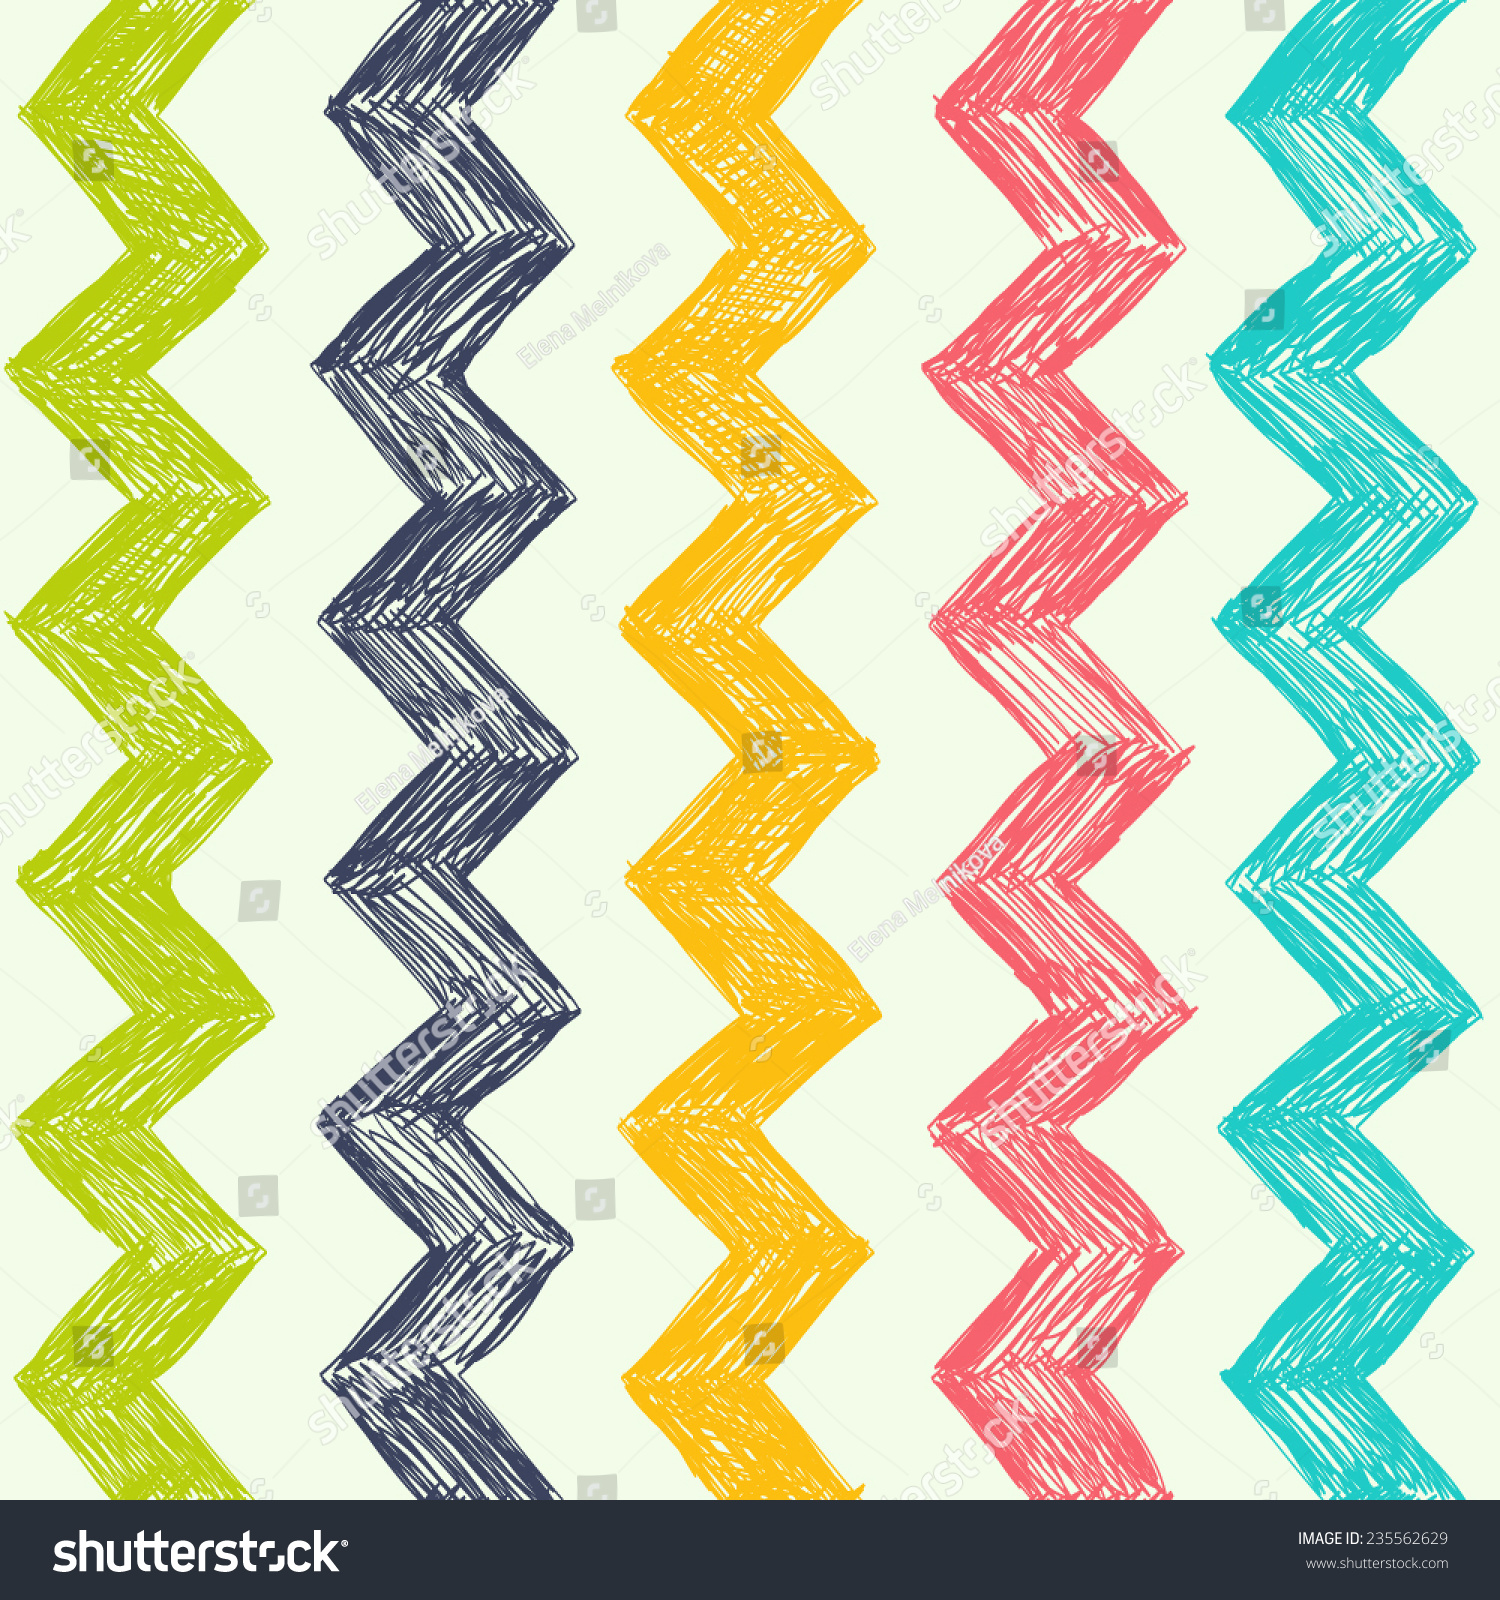 Wallpapers pattern fills web page backgrounds surface textures - Vector Simple Pattern With Zag Zag Background Can Be Used For Wallpapers Pattern Fills